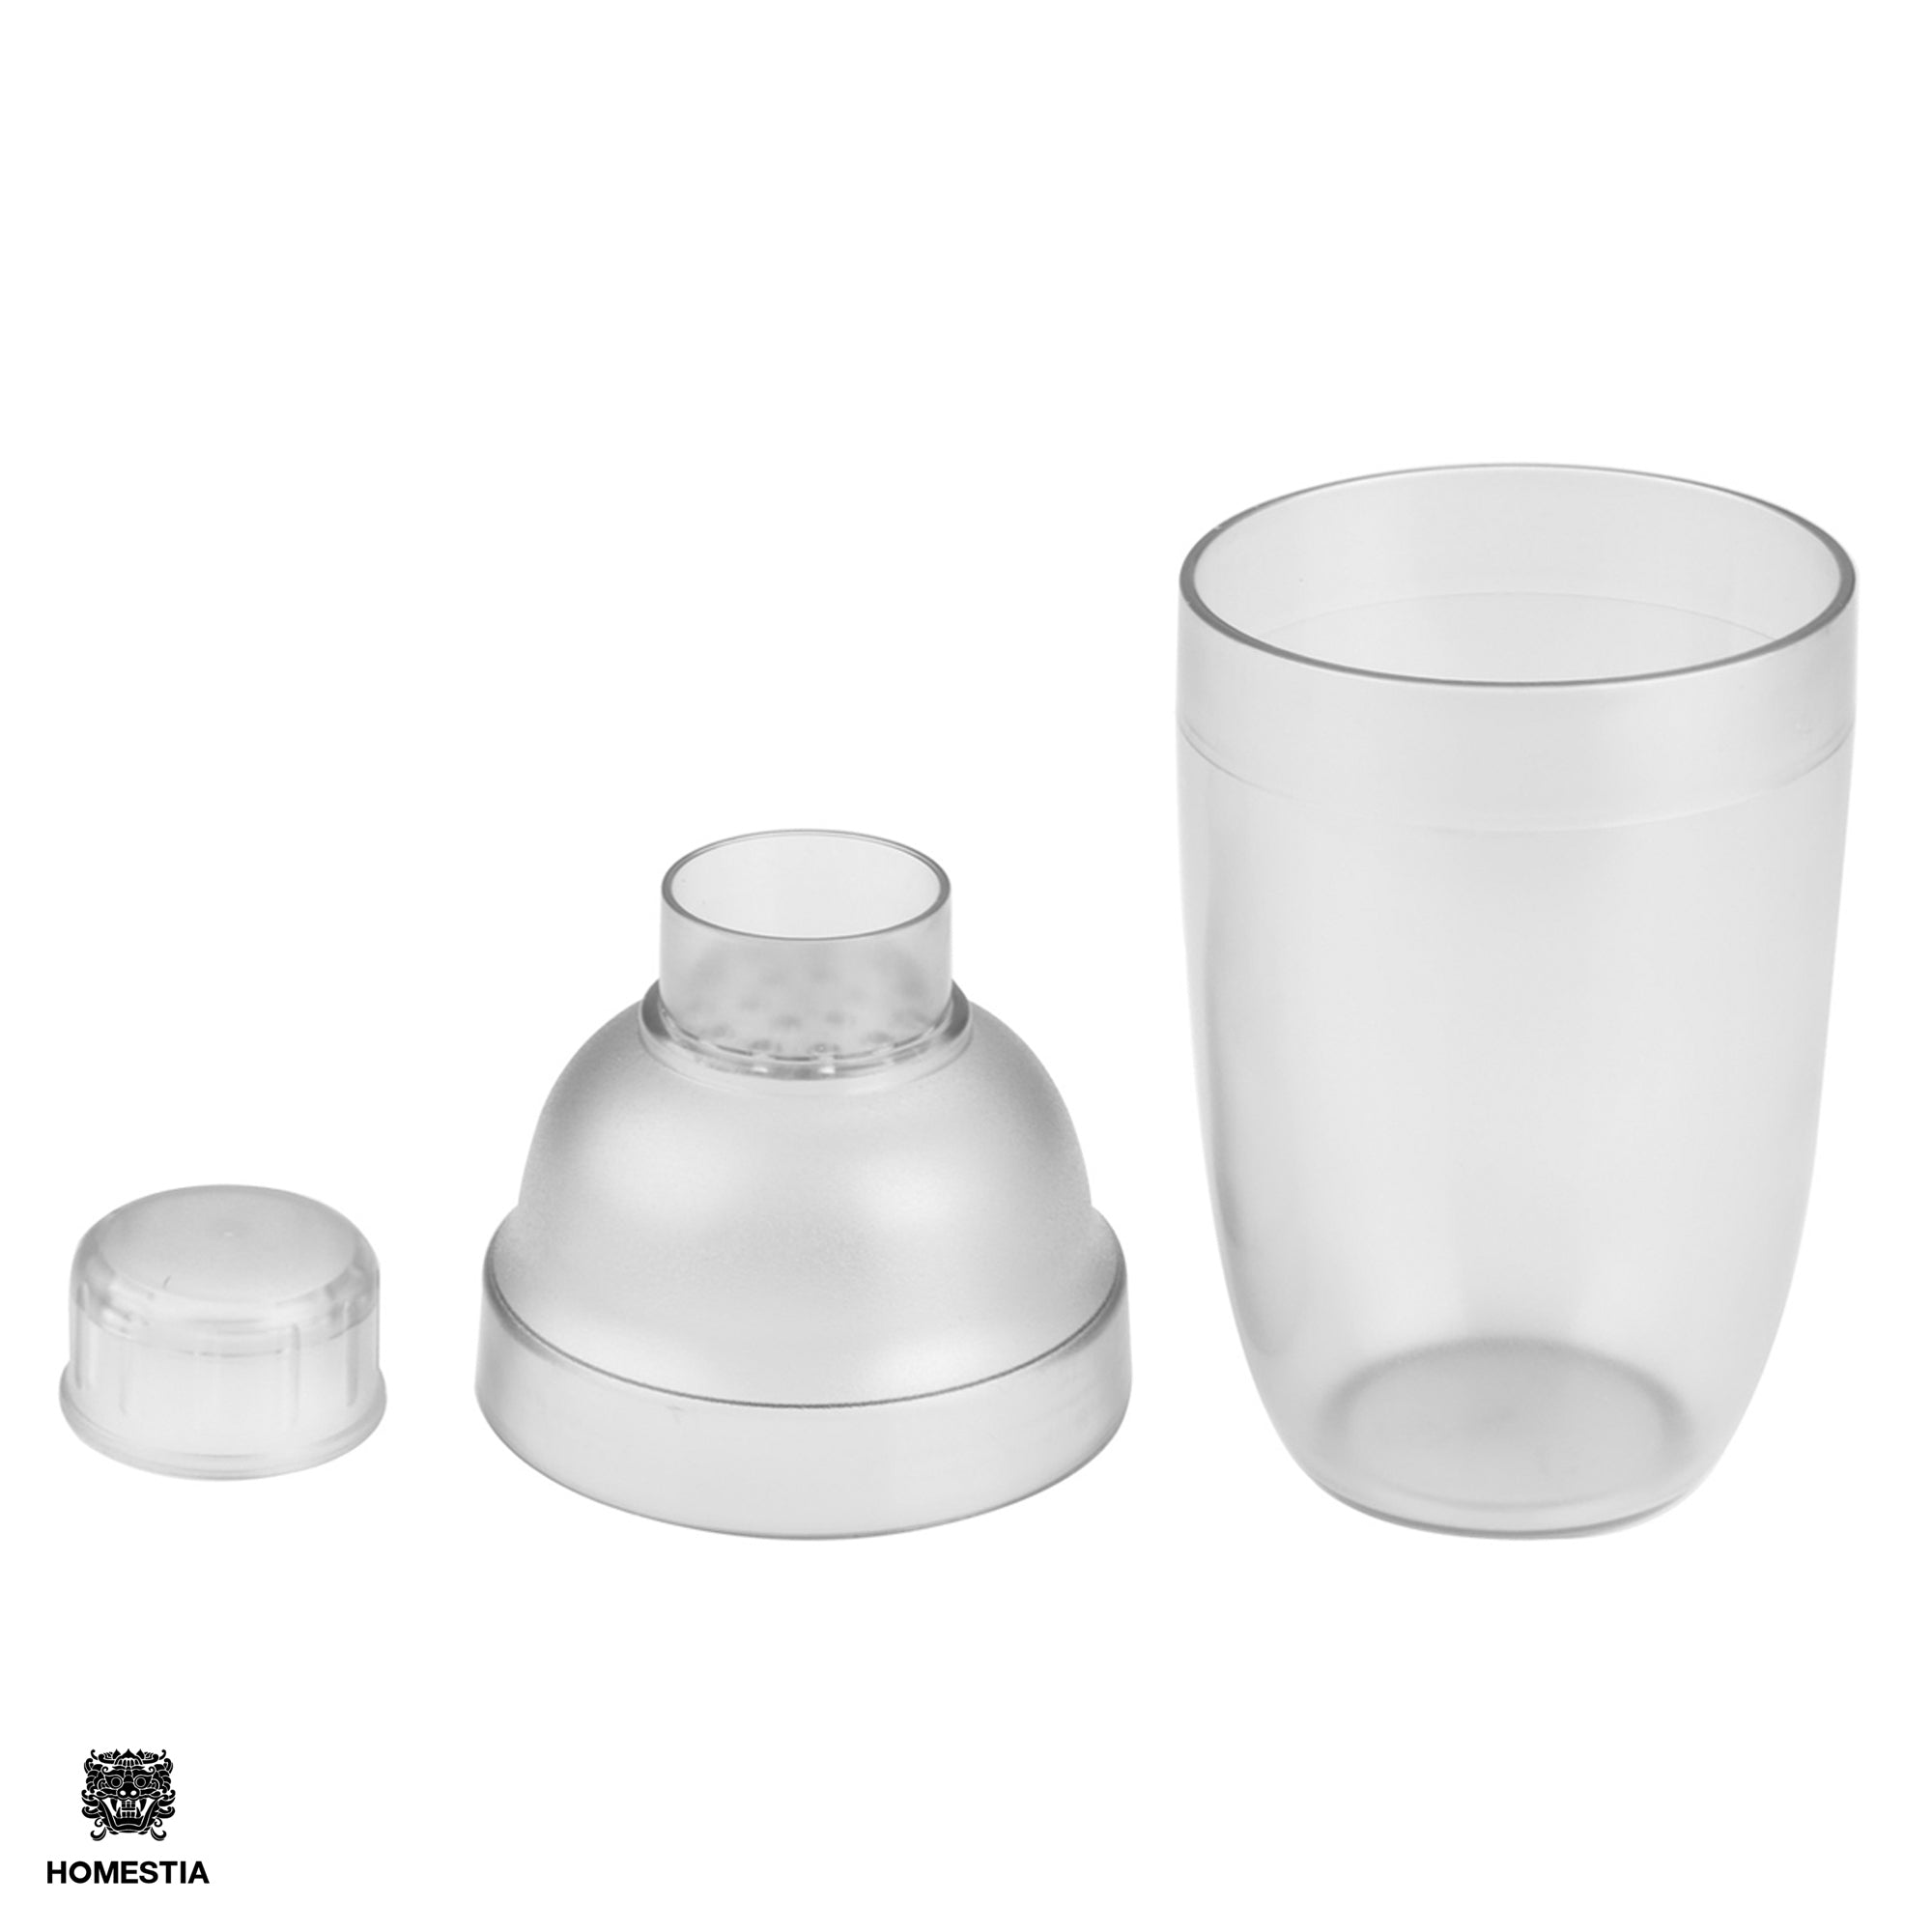 Homestia 18 oz Plastic Cocktail Shaker 3-Piece Drink Mixer Boba Tea Shaker W/Jigger